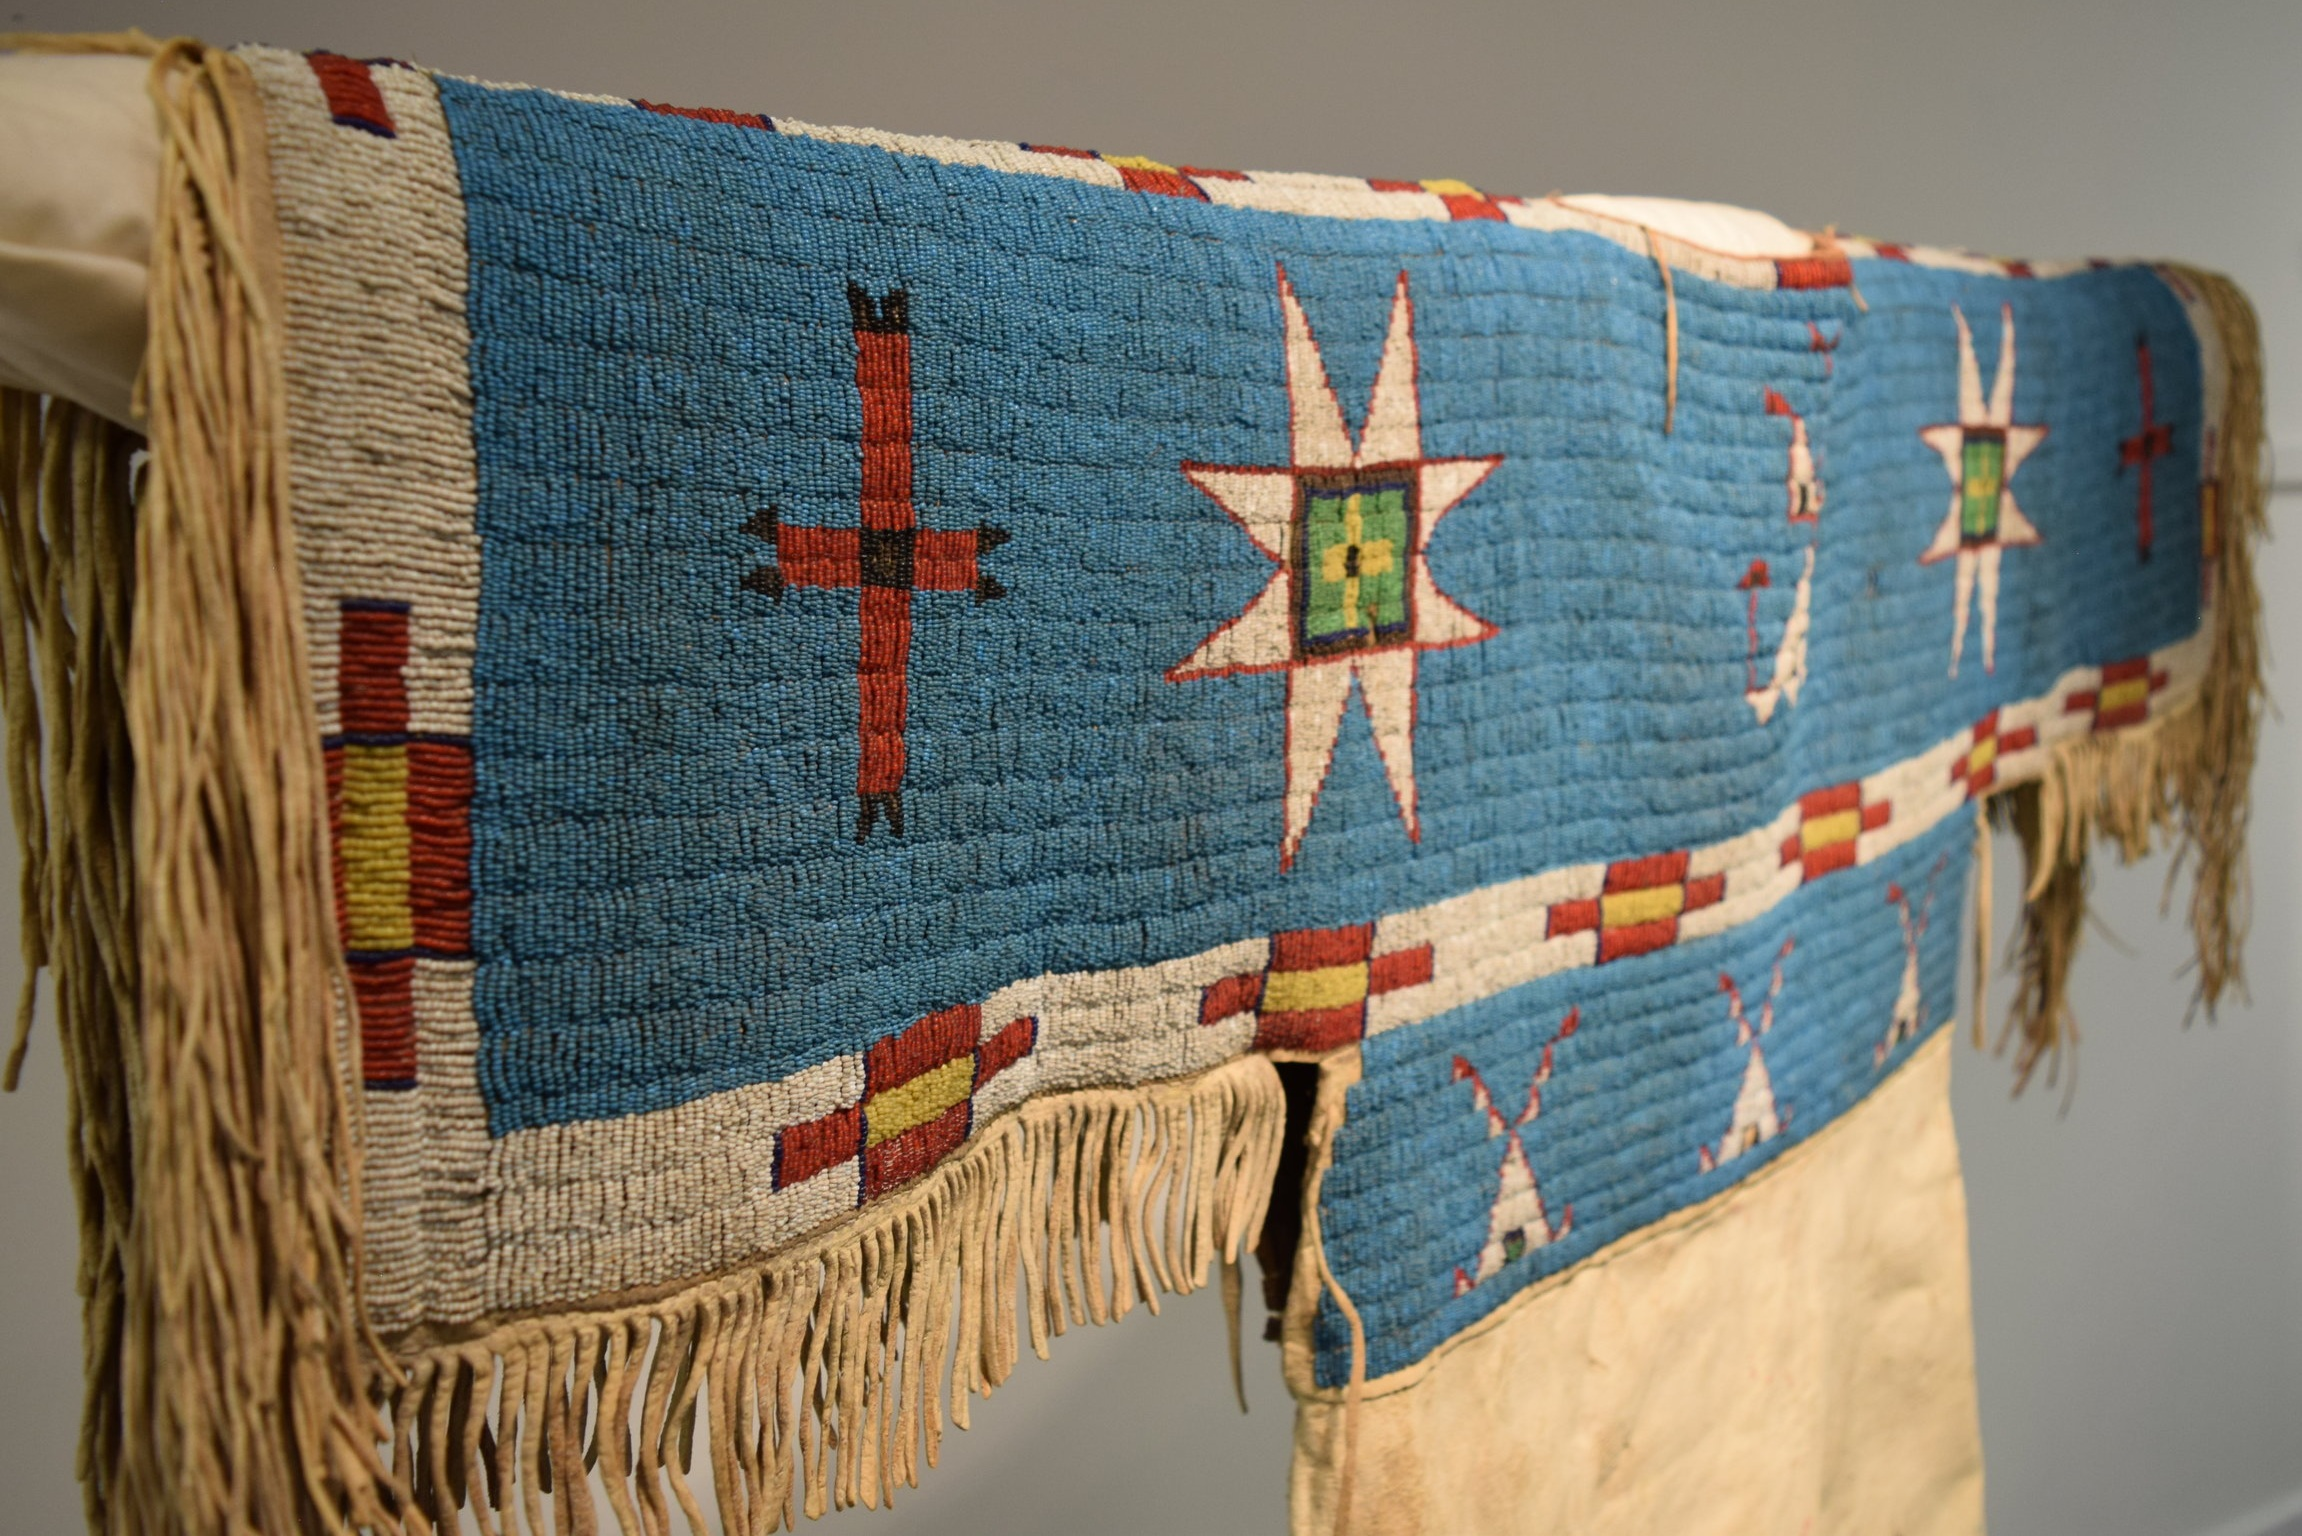 A Continuum of Native Art - Native American art cannot be defined by one aesthetic, medium, or tradition alone. It is constantly changing, reflecting the diverse cultures and experiences of Native artists themselves.Over the last five decades, the Red Cloud Indian Art Show has celebrated the continuum of Native art—and honored the artists who create it.Held on the Pine Ridge Reservation in western South Dakota, the Red Cloud Indian Art Show is the largest and longest-running Native art exhibition of its kind—and one of only a few held in an indigenous community. Hundreds of artists from tribal nations across North America have shared their work through the Red Cloud show, in categories ranging from painting and photography to beadwork and quillwork.But what sets the show apart is its inclusion of all Native artists. Its purpose is to create opportunities for Native artists to explore their talents and share their perspectives, regardless of their previous exposure to the art world. Grounded in community and culture, the Red Cloud Indian Art Show allows the artists themselves to guide the narrative on Native art and indigenous experience.